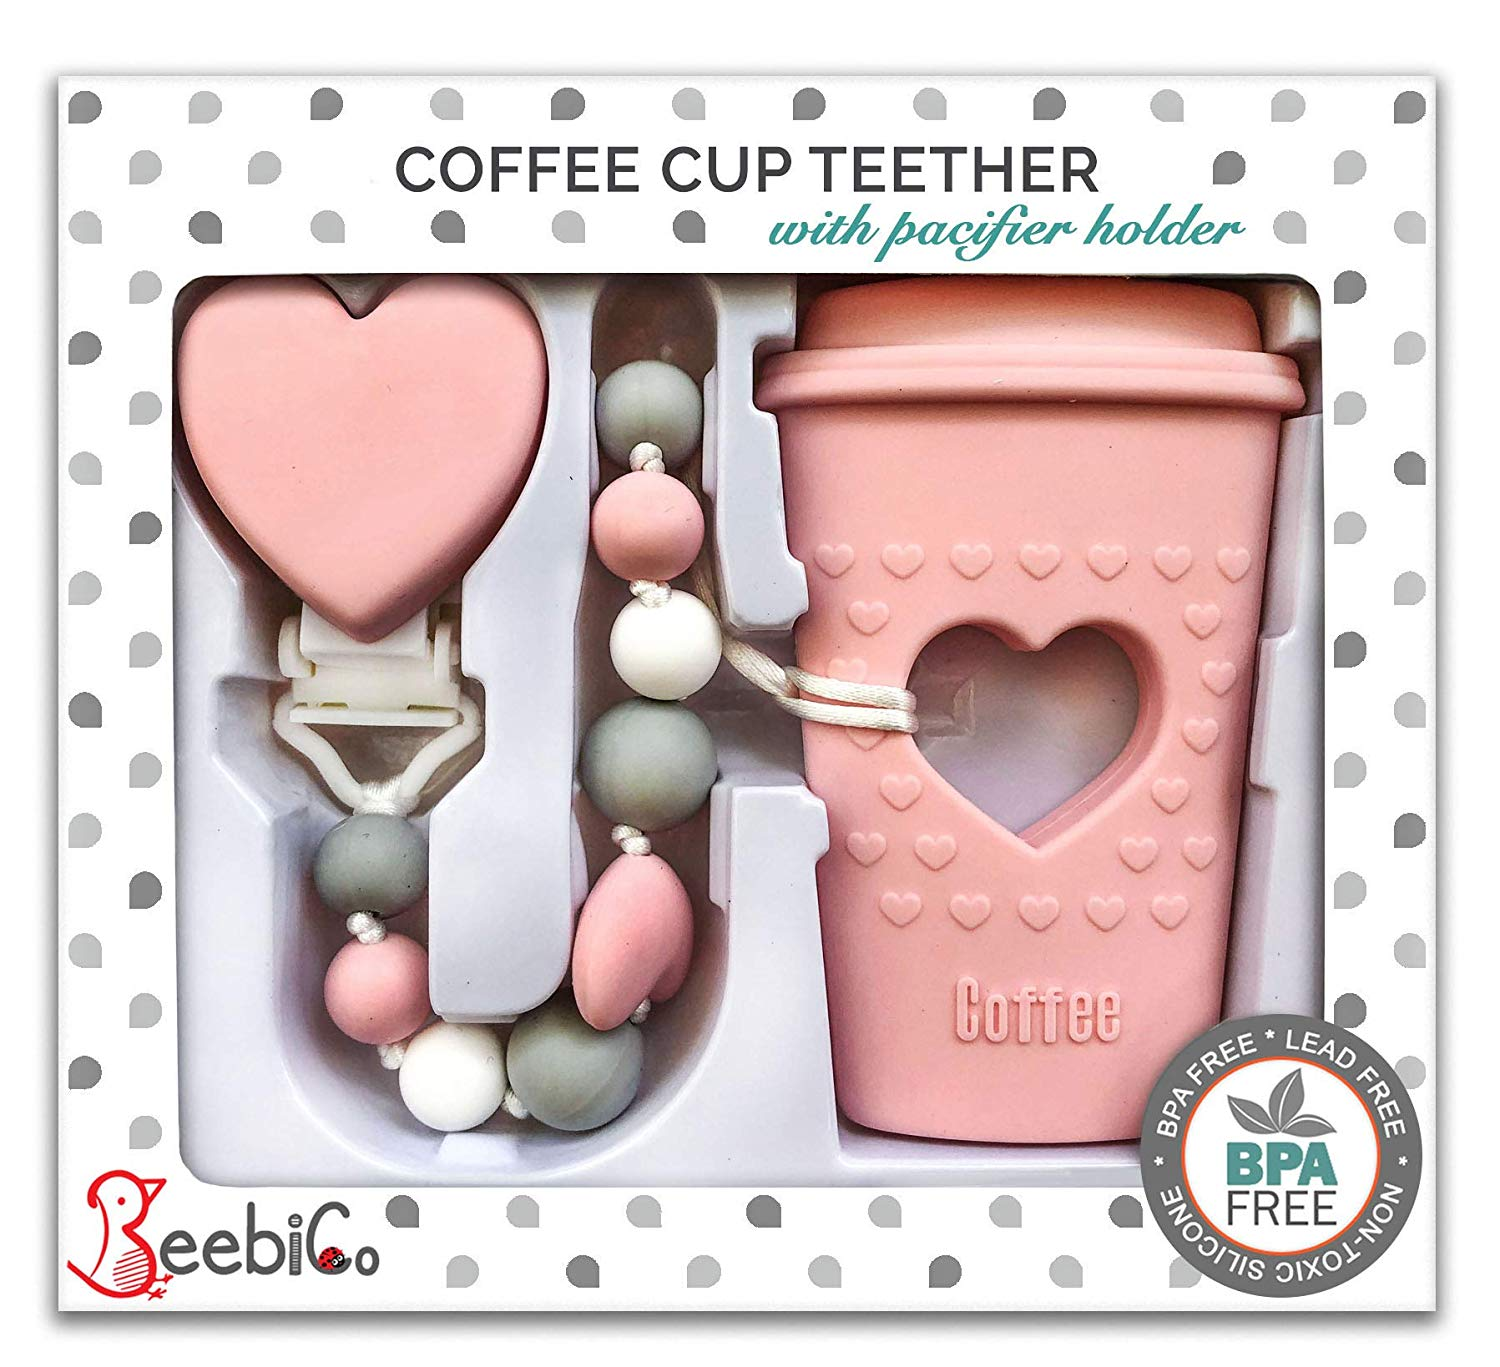 Silicone Teether-Food Grade Teether-Silicone Teething Clip-Pacifier Clip-Pacifier Holder-Coffee Teether-Teether Gift Set